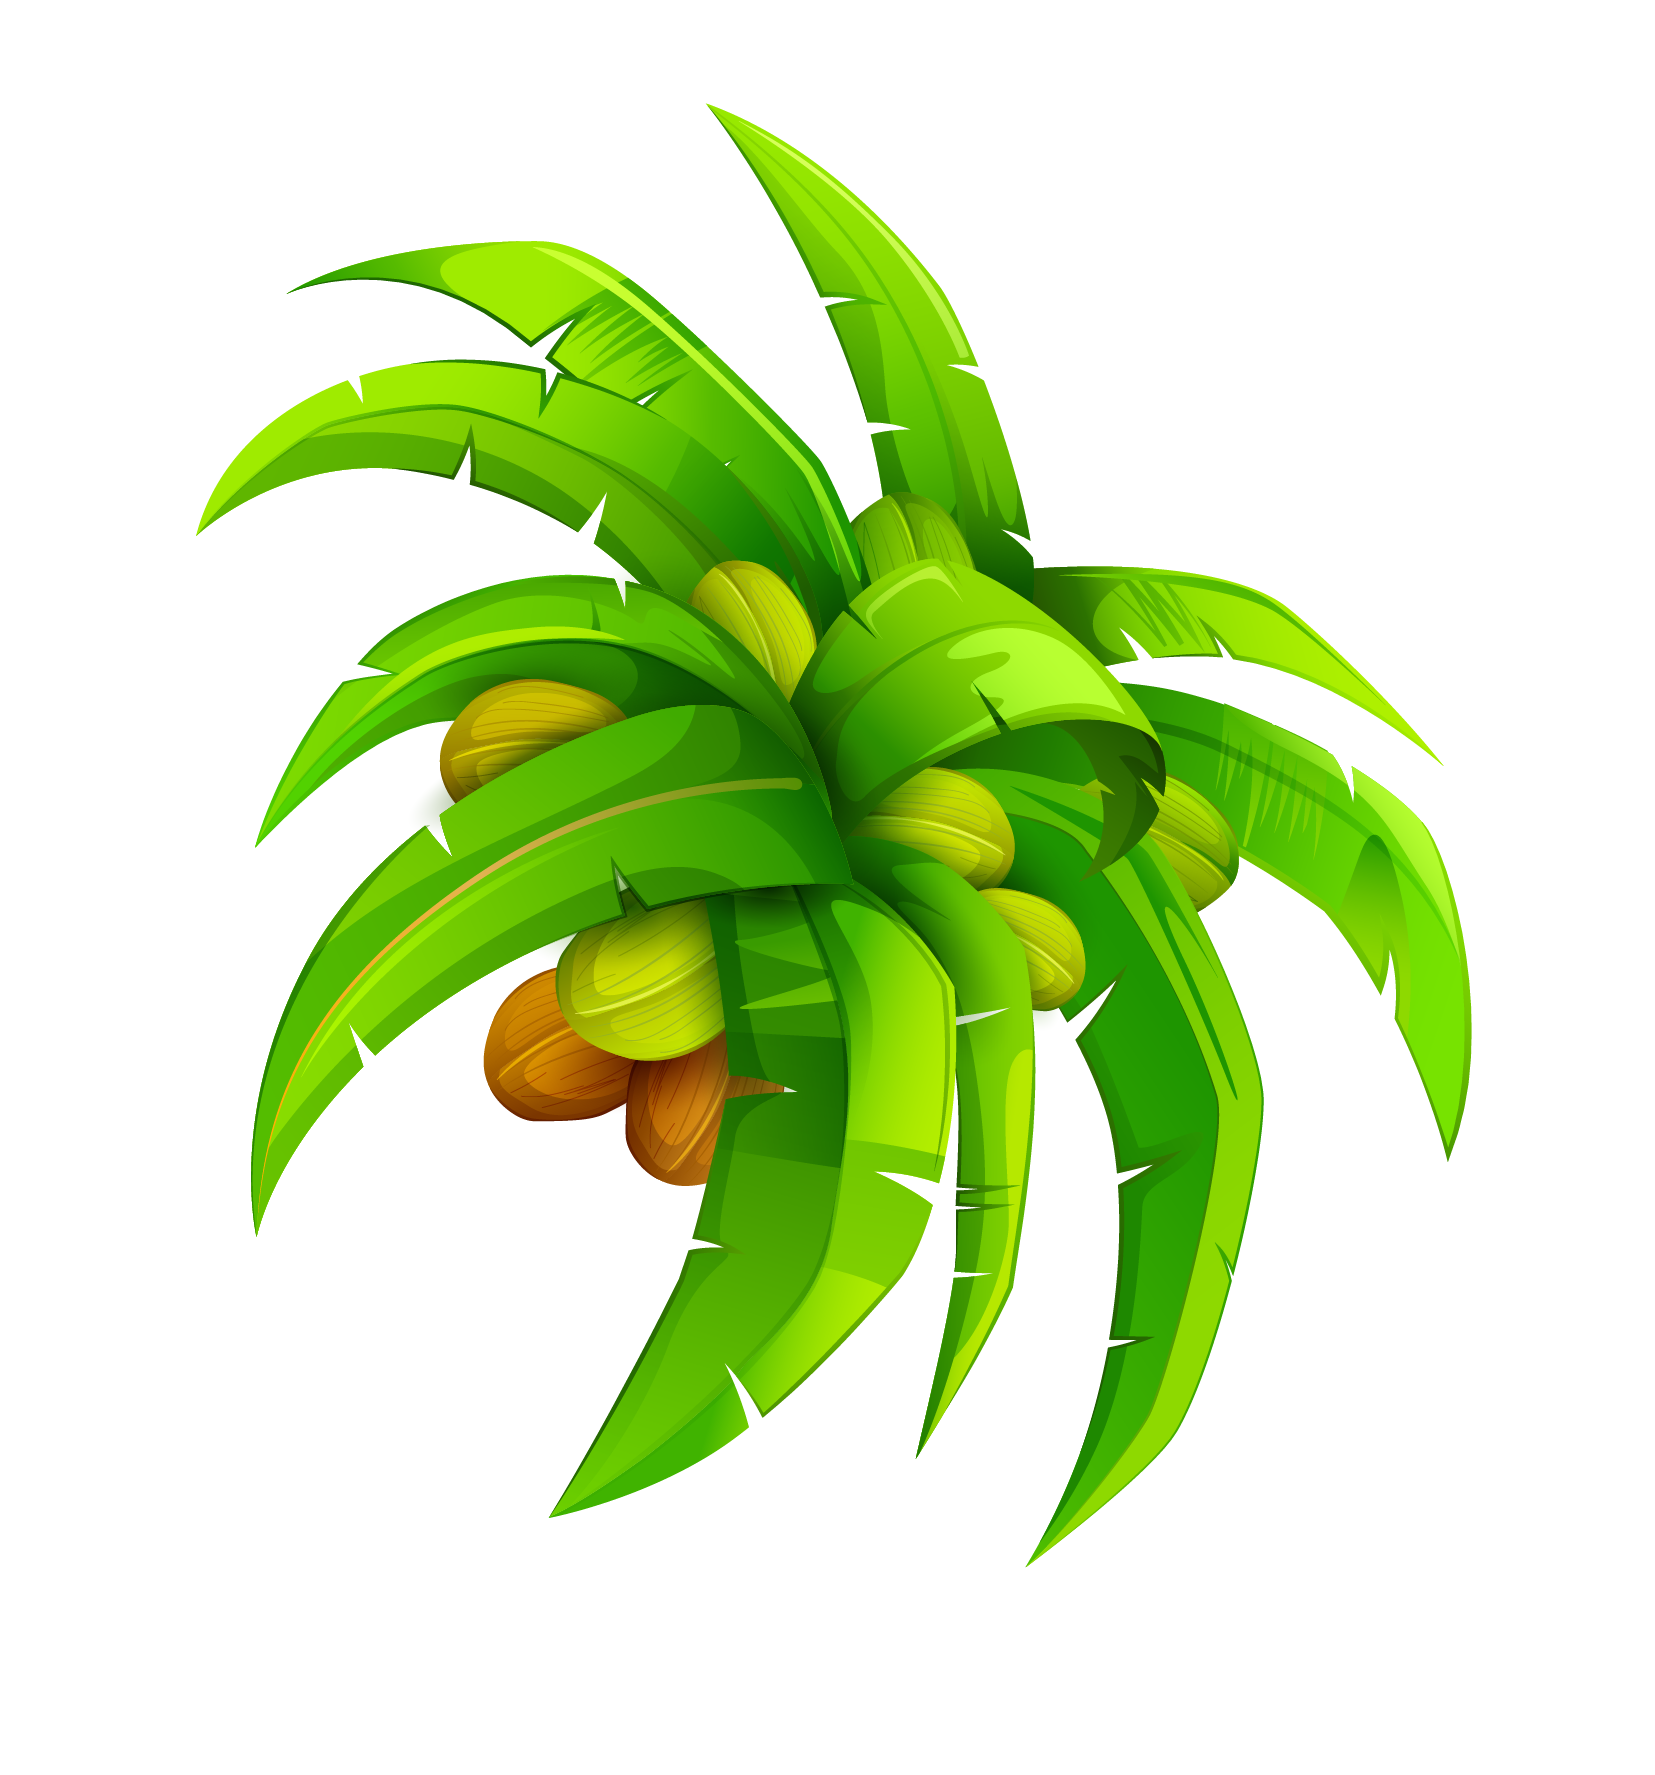 Coconuts vector cartoon. Leaf coconut euclidean transprent